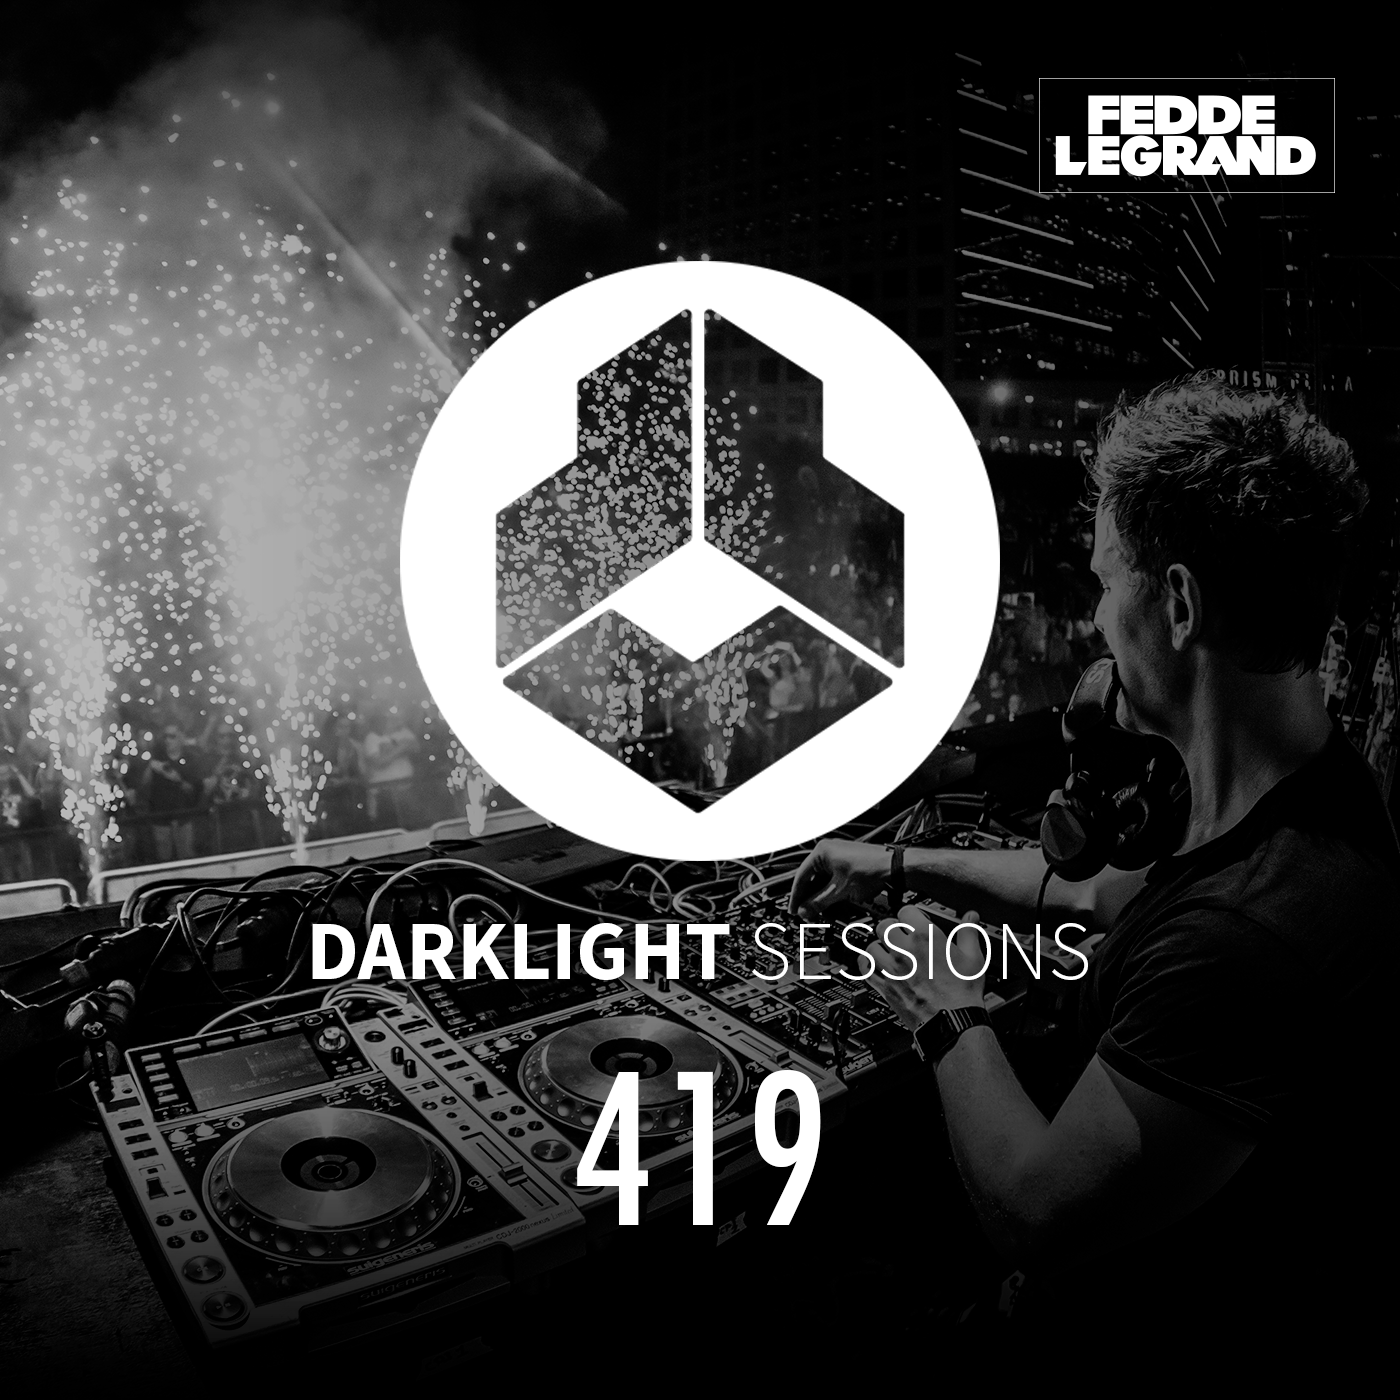 Darklight Sessions 419